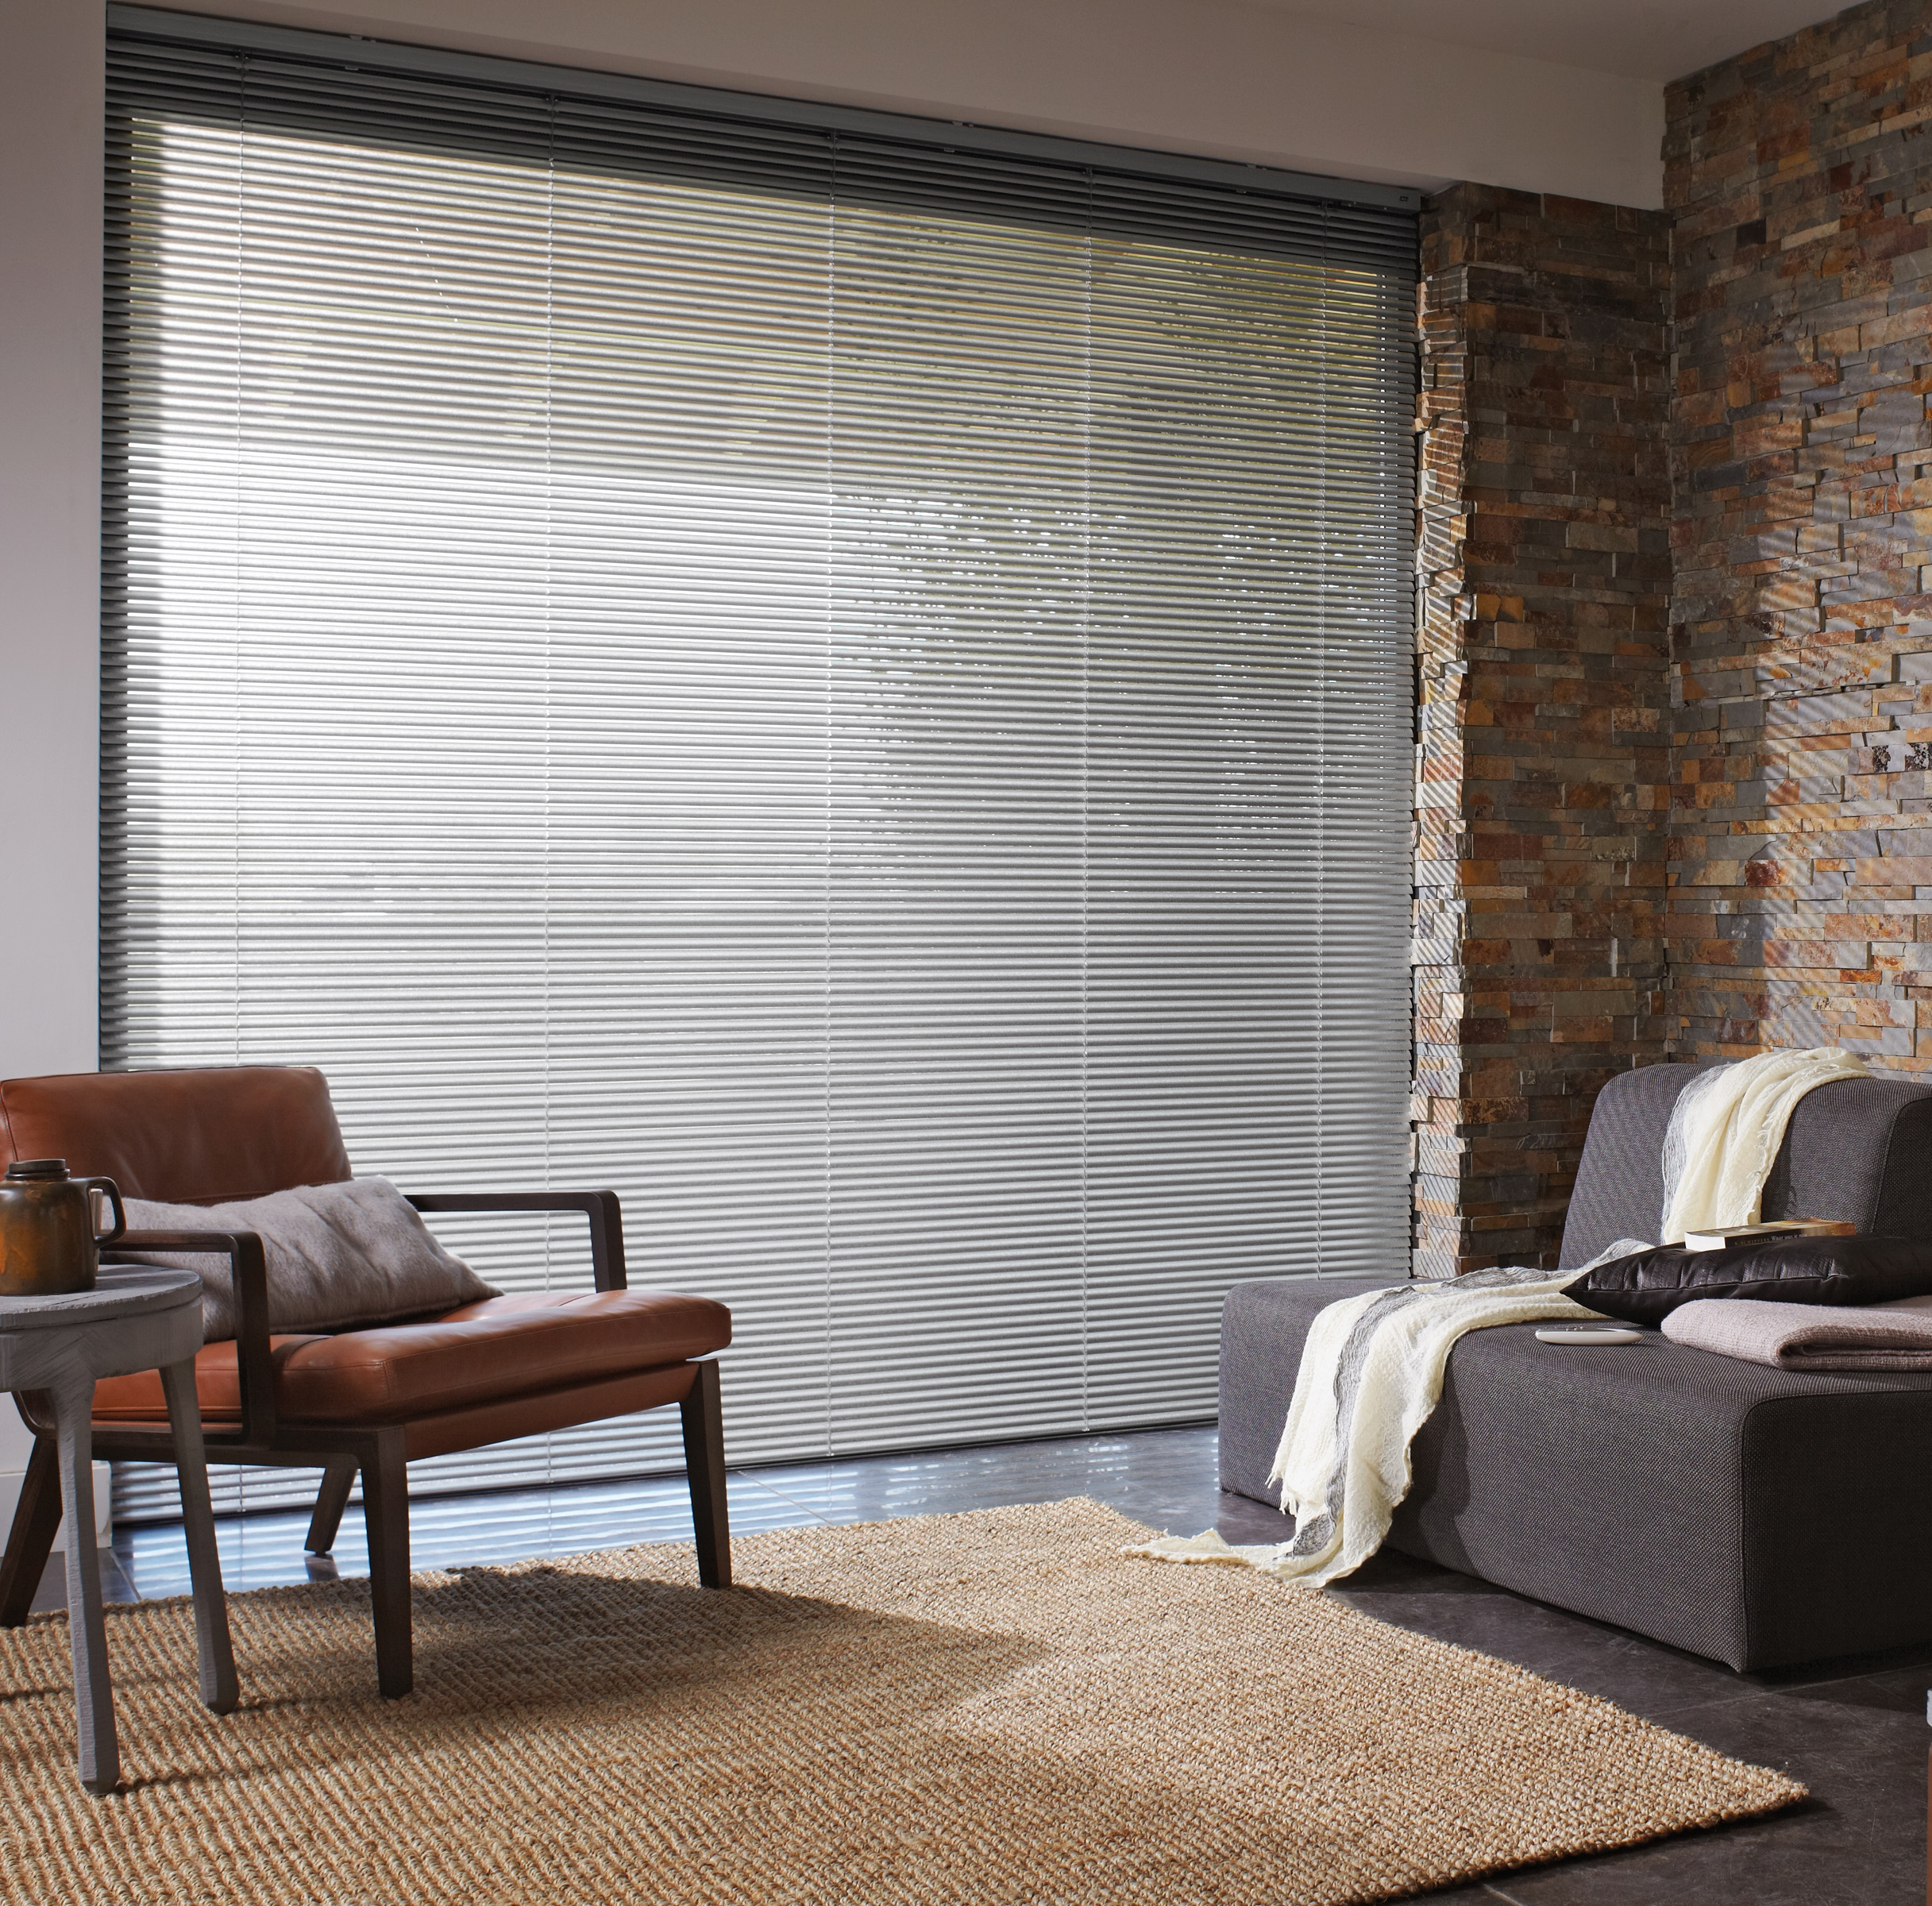 Luxaflex 50mm Grey Metal Venetian Blind